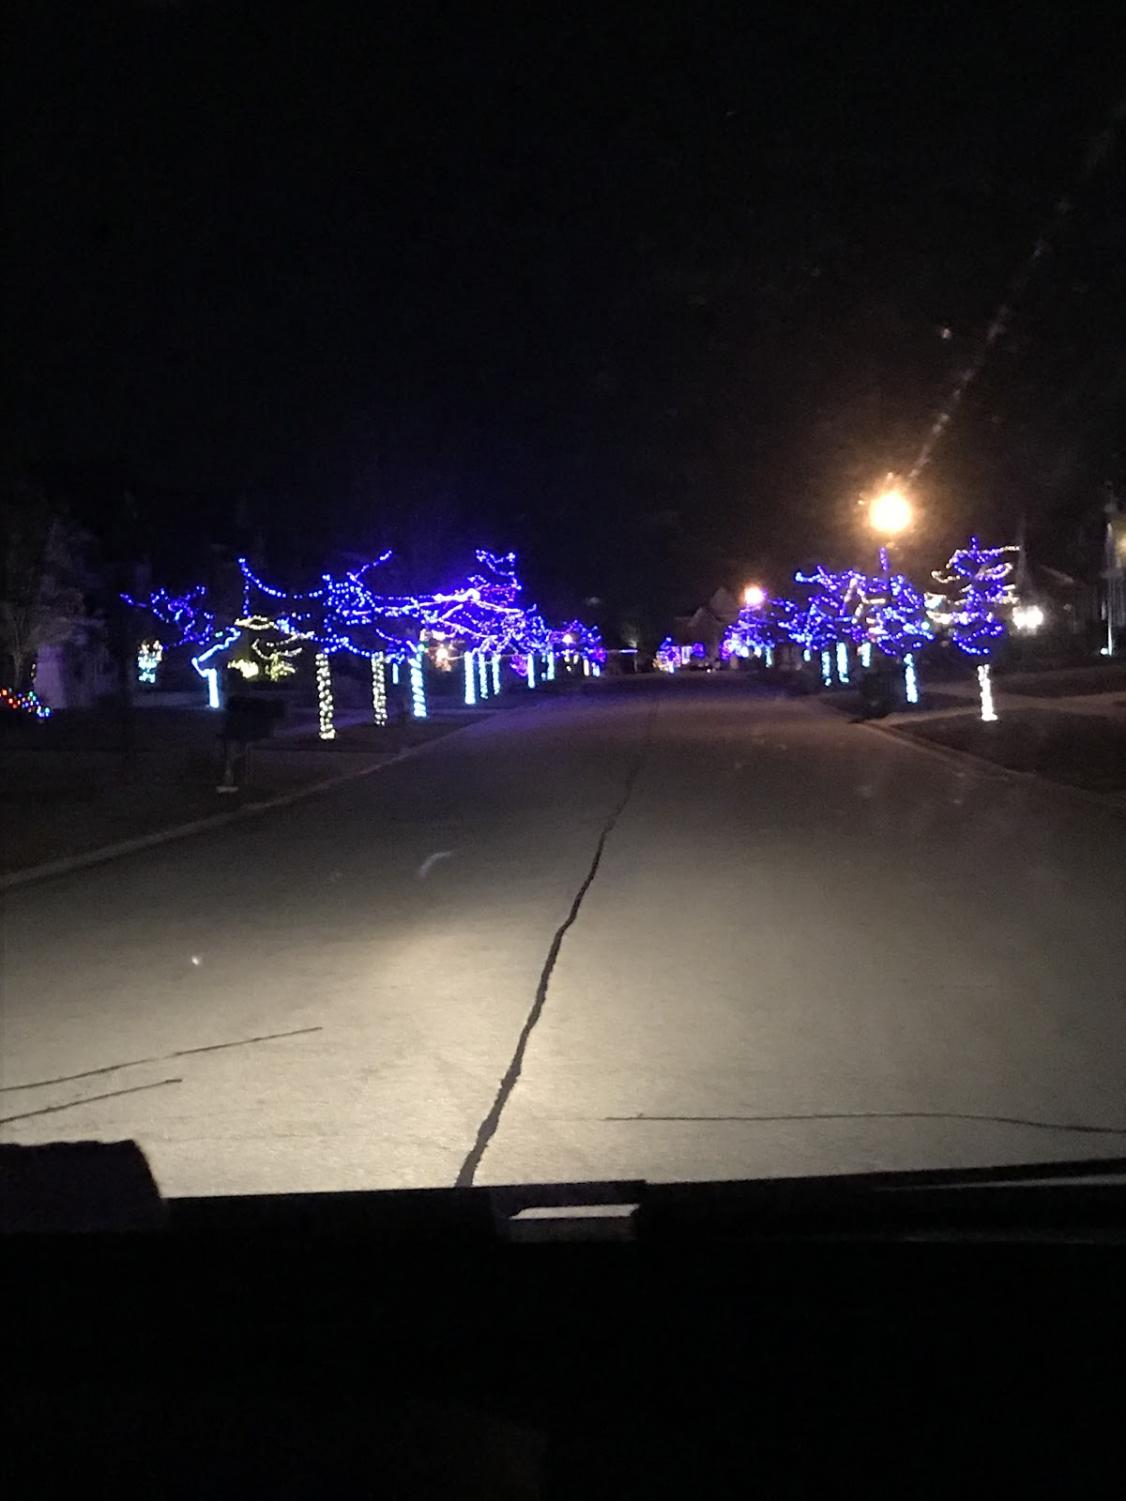 Just one of the holiday lights display at Creekside South